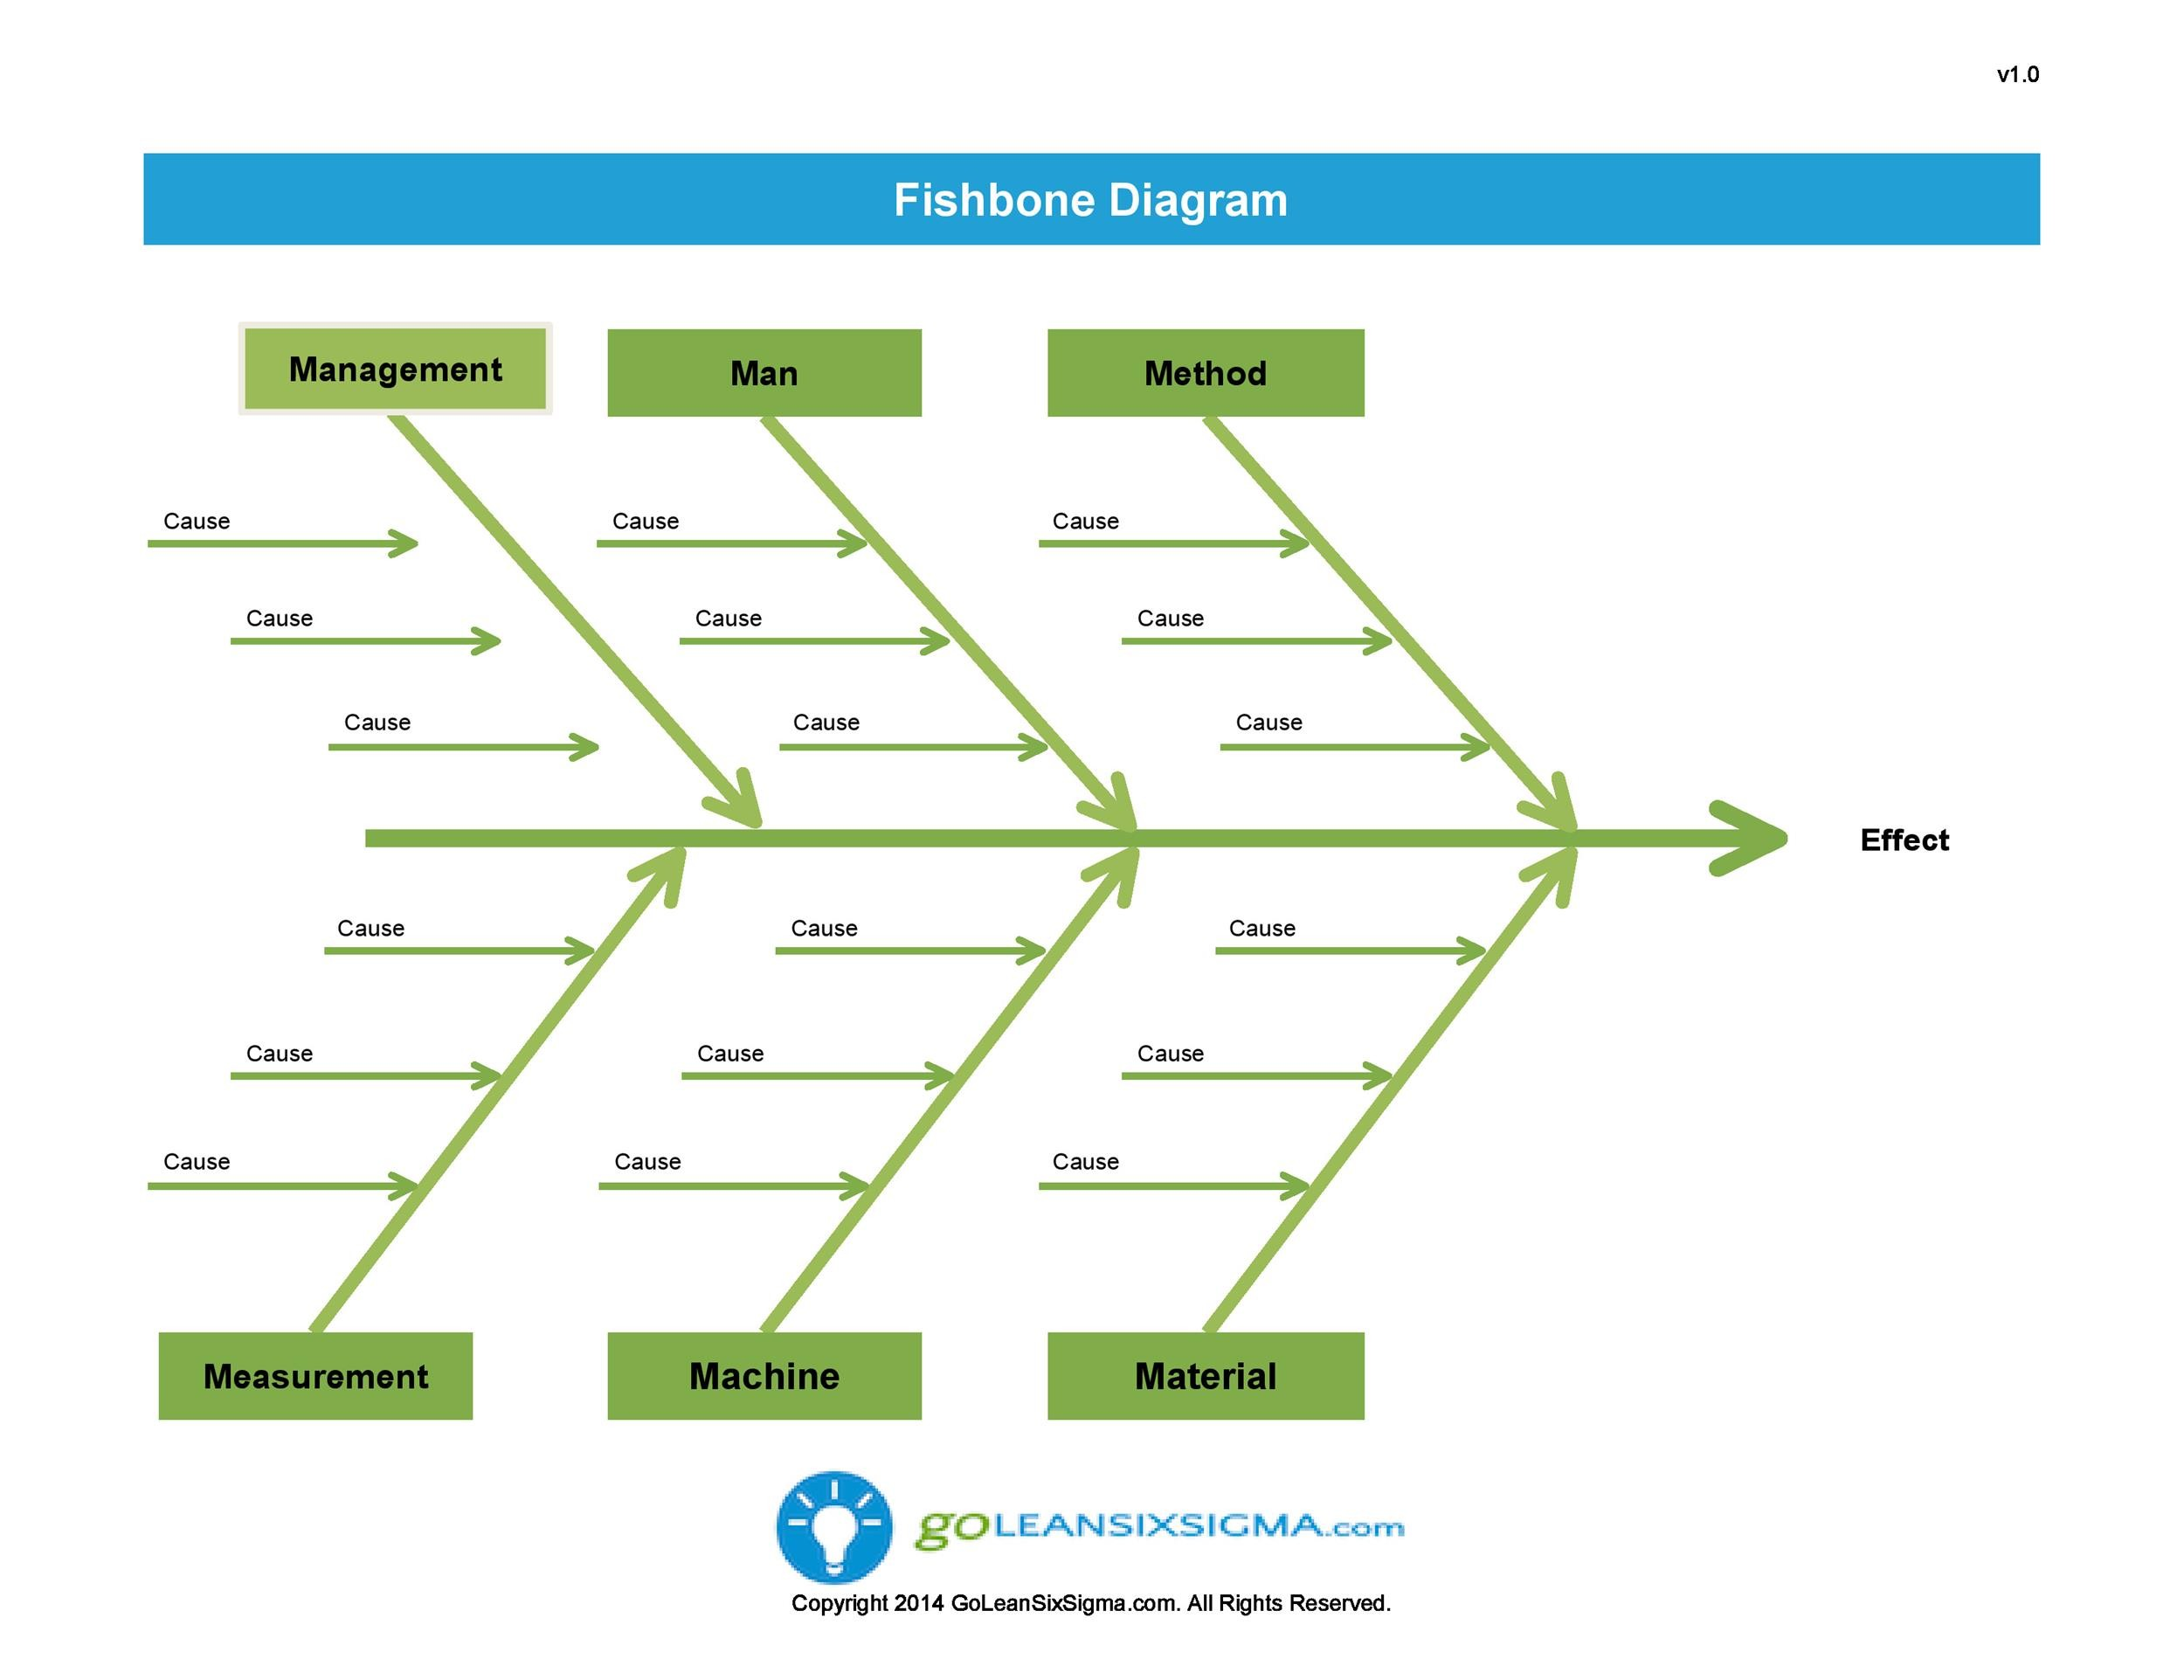 43 Great Fishbone Diagram Templates & Examples [Word, Excel] on pareto chart, fishbone digrams, control chart, sipoc template, cause and effect template, fishbone graph, check sheet, fishbone problem solving, dmaic template, graphic organizer template, seven basic tools of quality, acceptance sampling, fishbone chart, 5 whys template, pareto chart template, venn diagram, histogram template, parts management plan template, decision tree template, fishbone diagrma, xbar and r chart, fishbone model, program evaluation and review technique, data flow diagram, scatter plot, pdca template, causal diagram, run chart template, run chart, brainstorming template, fishbone template word, control chart template, mind map,